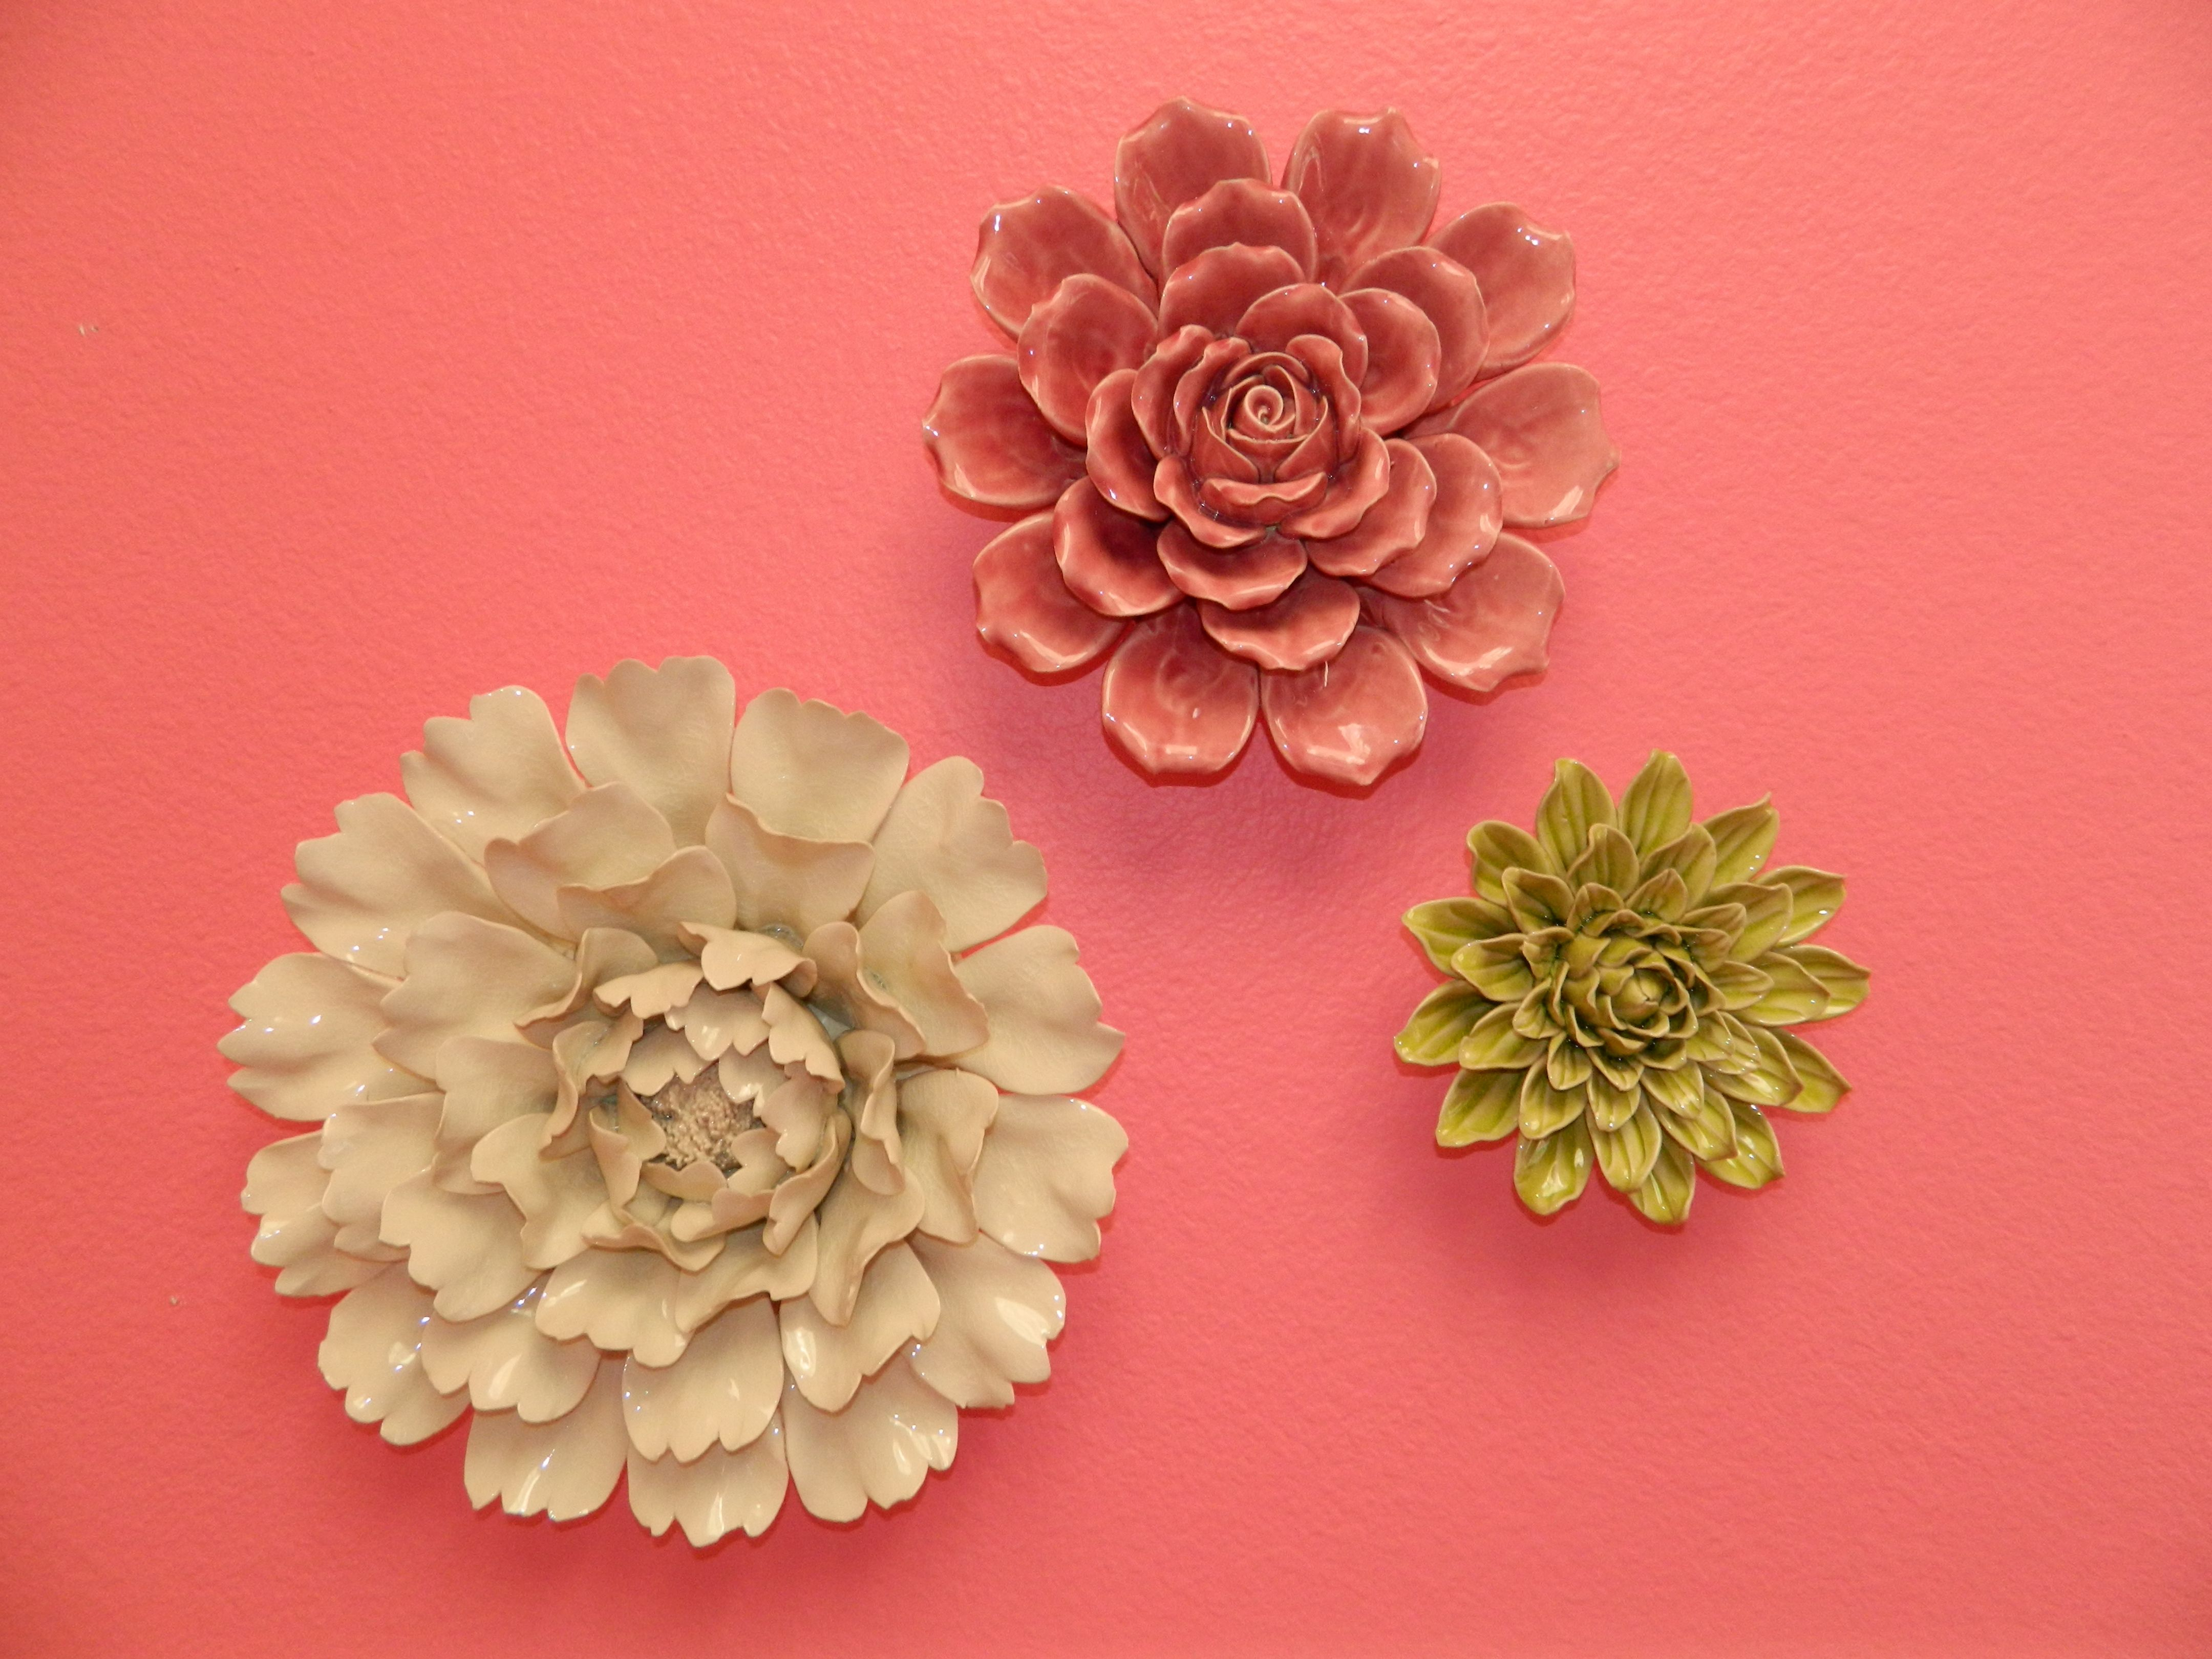 Ceramic Wall Flowers Brighten Up This Children S Room